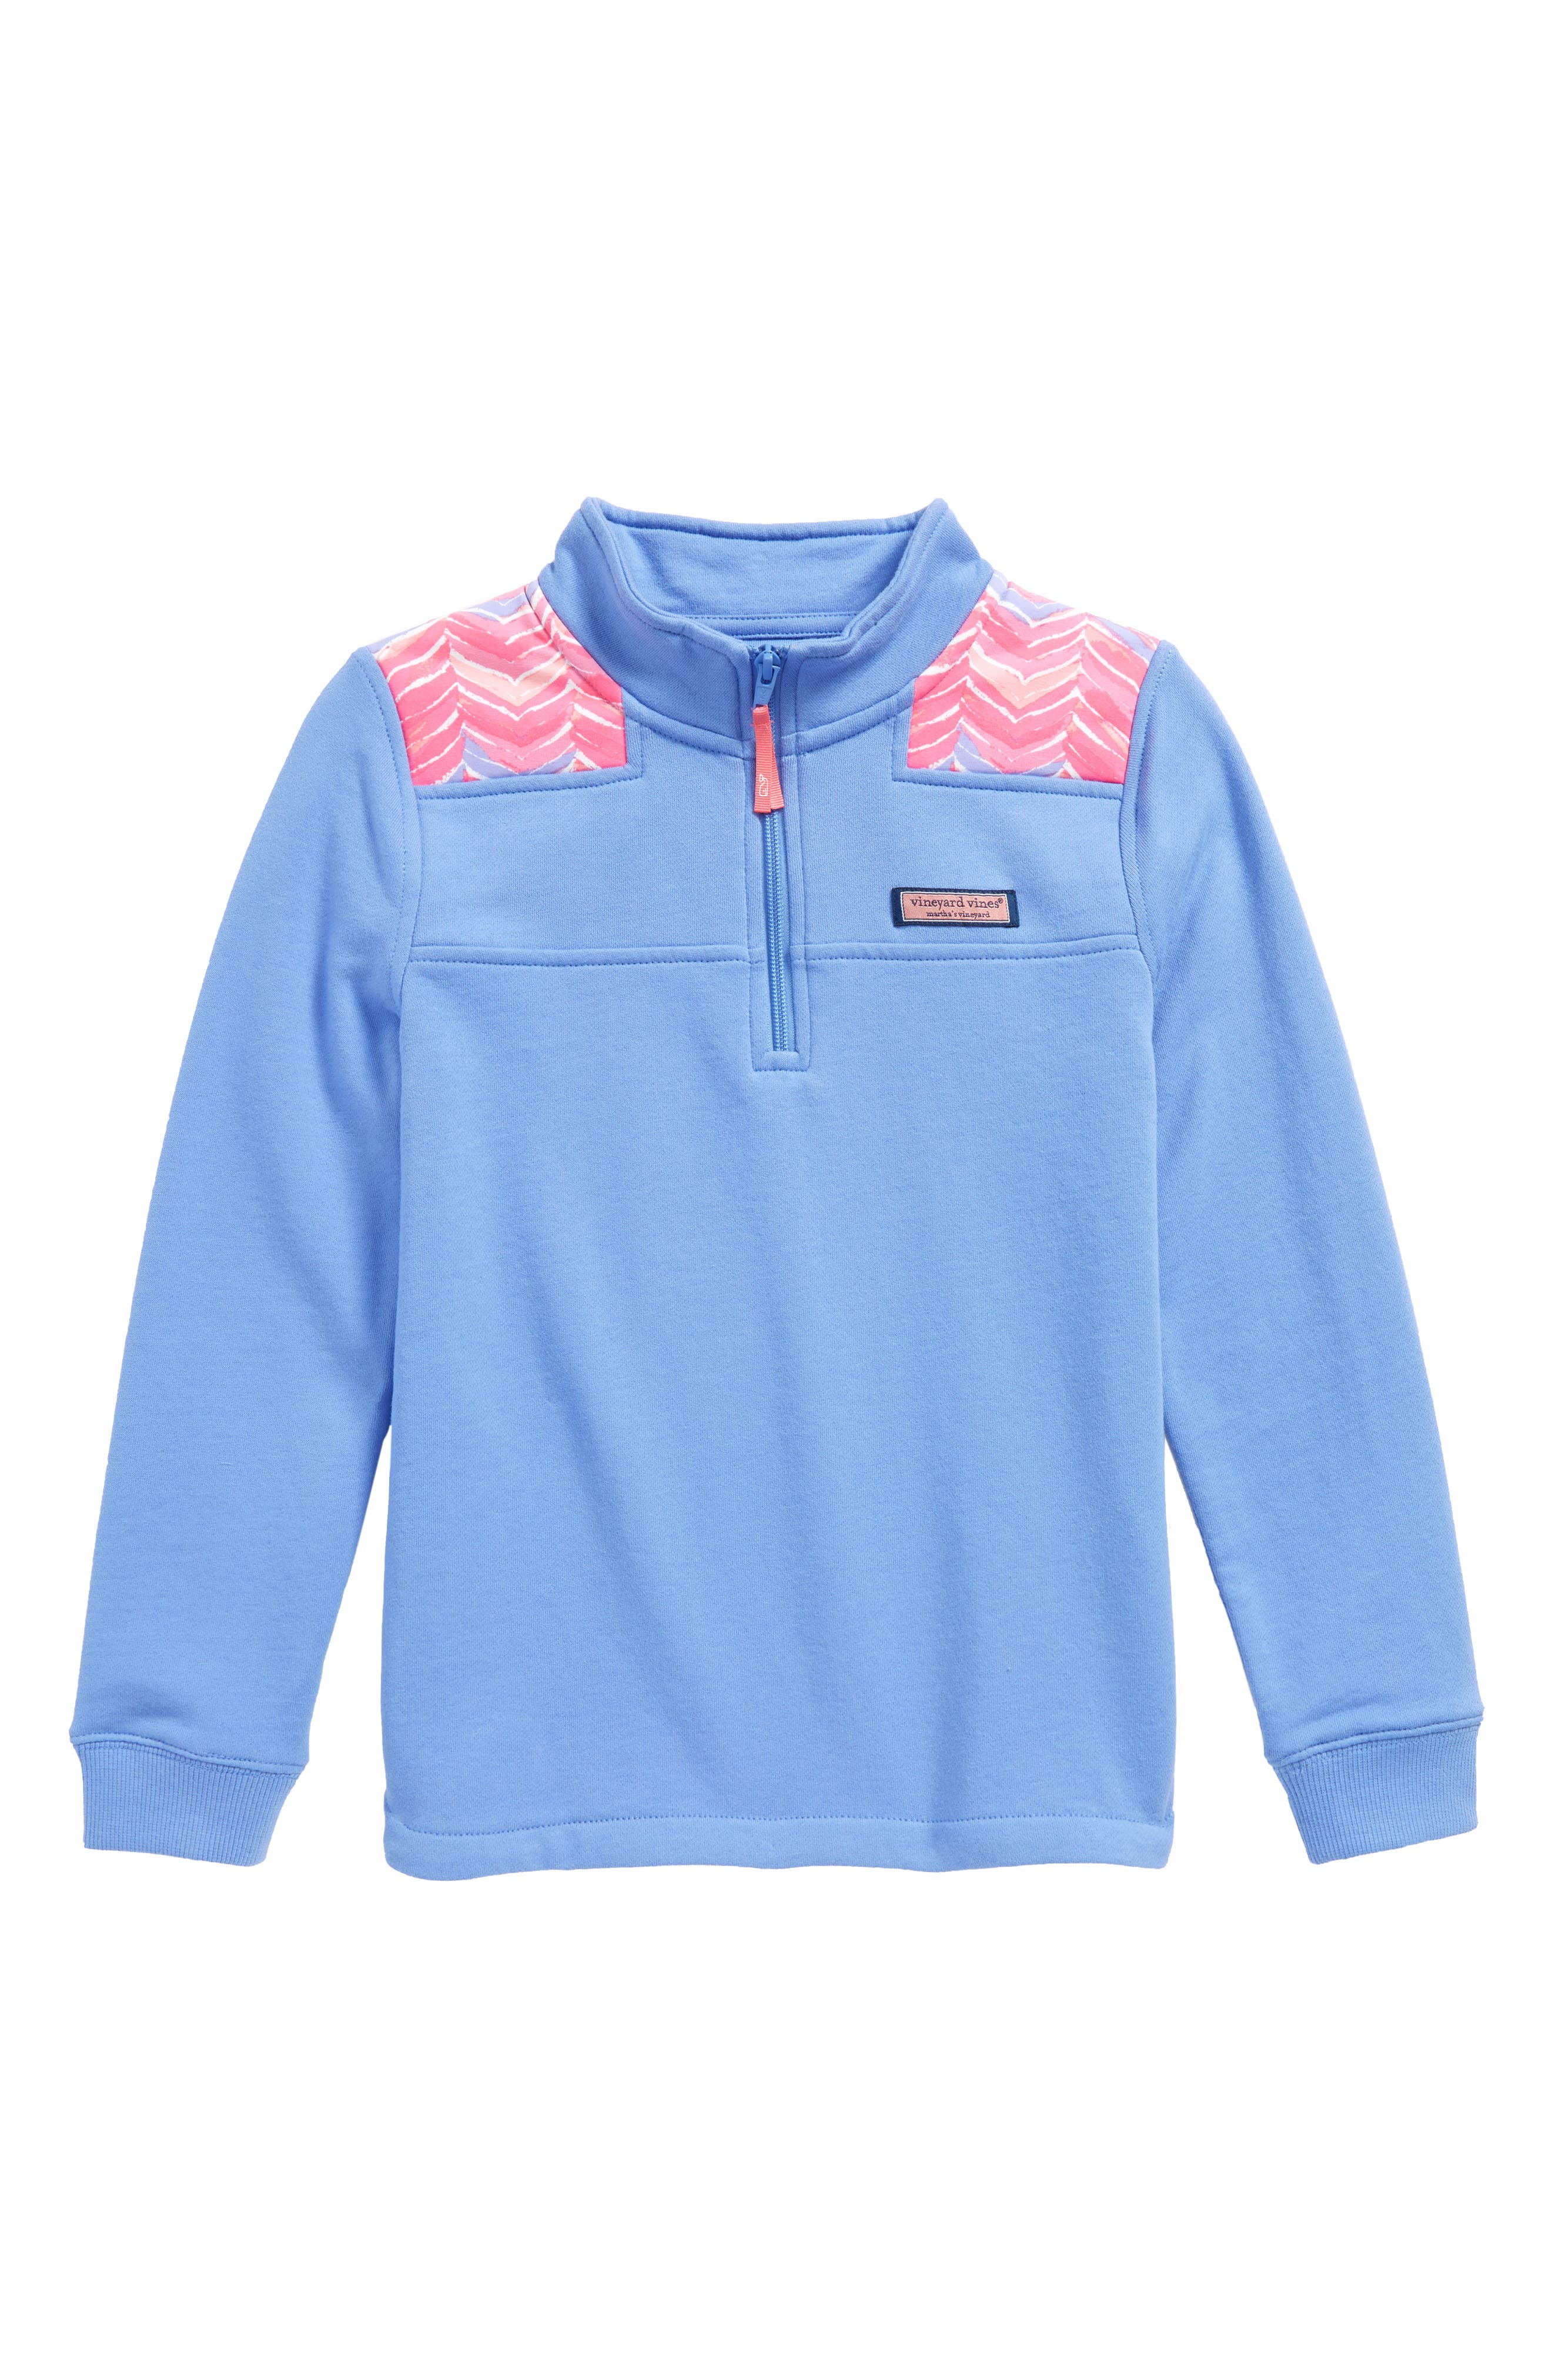 Whale Tail Shep Quarter Zip Pullover,                         Main,                         color, Periwinkle